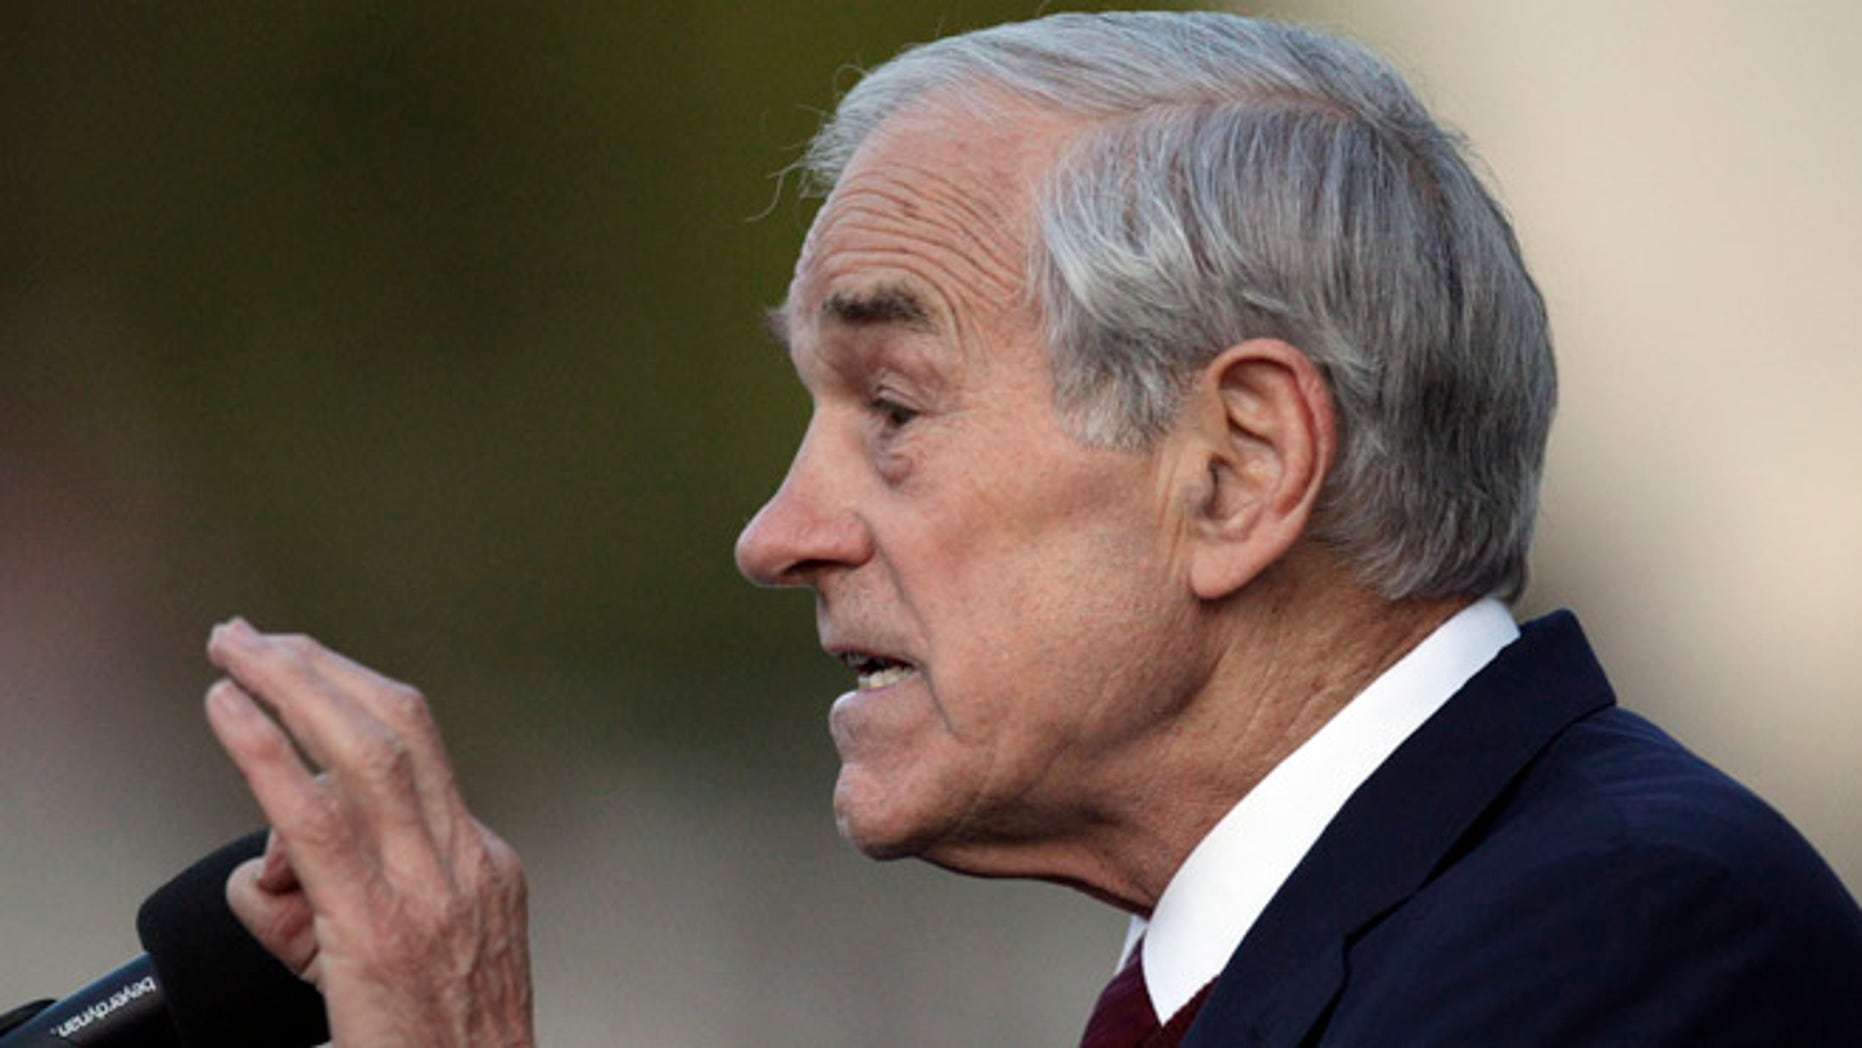 April 5, 2012: Republican presidential candidate Rep. Ron Paul, R-Texas, gestures while speaking at the University of California at Berkeley, Calif.